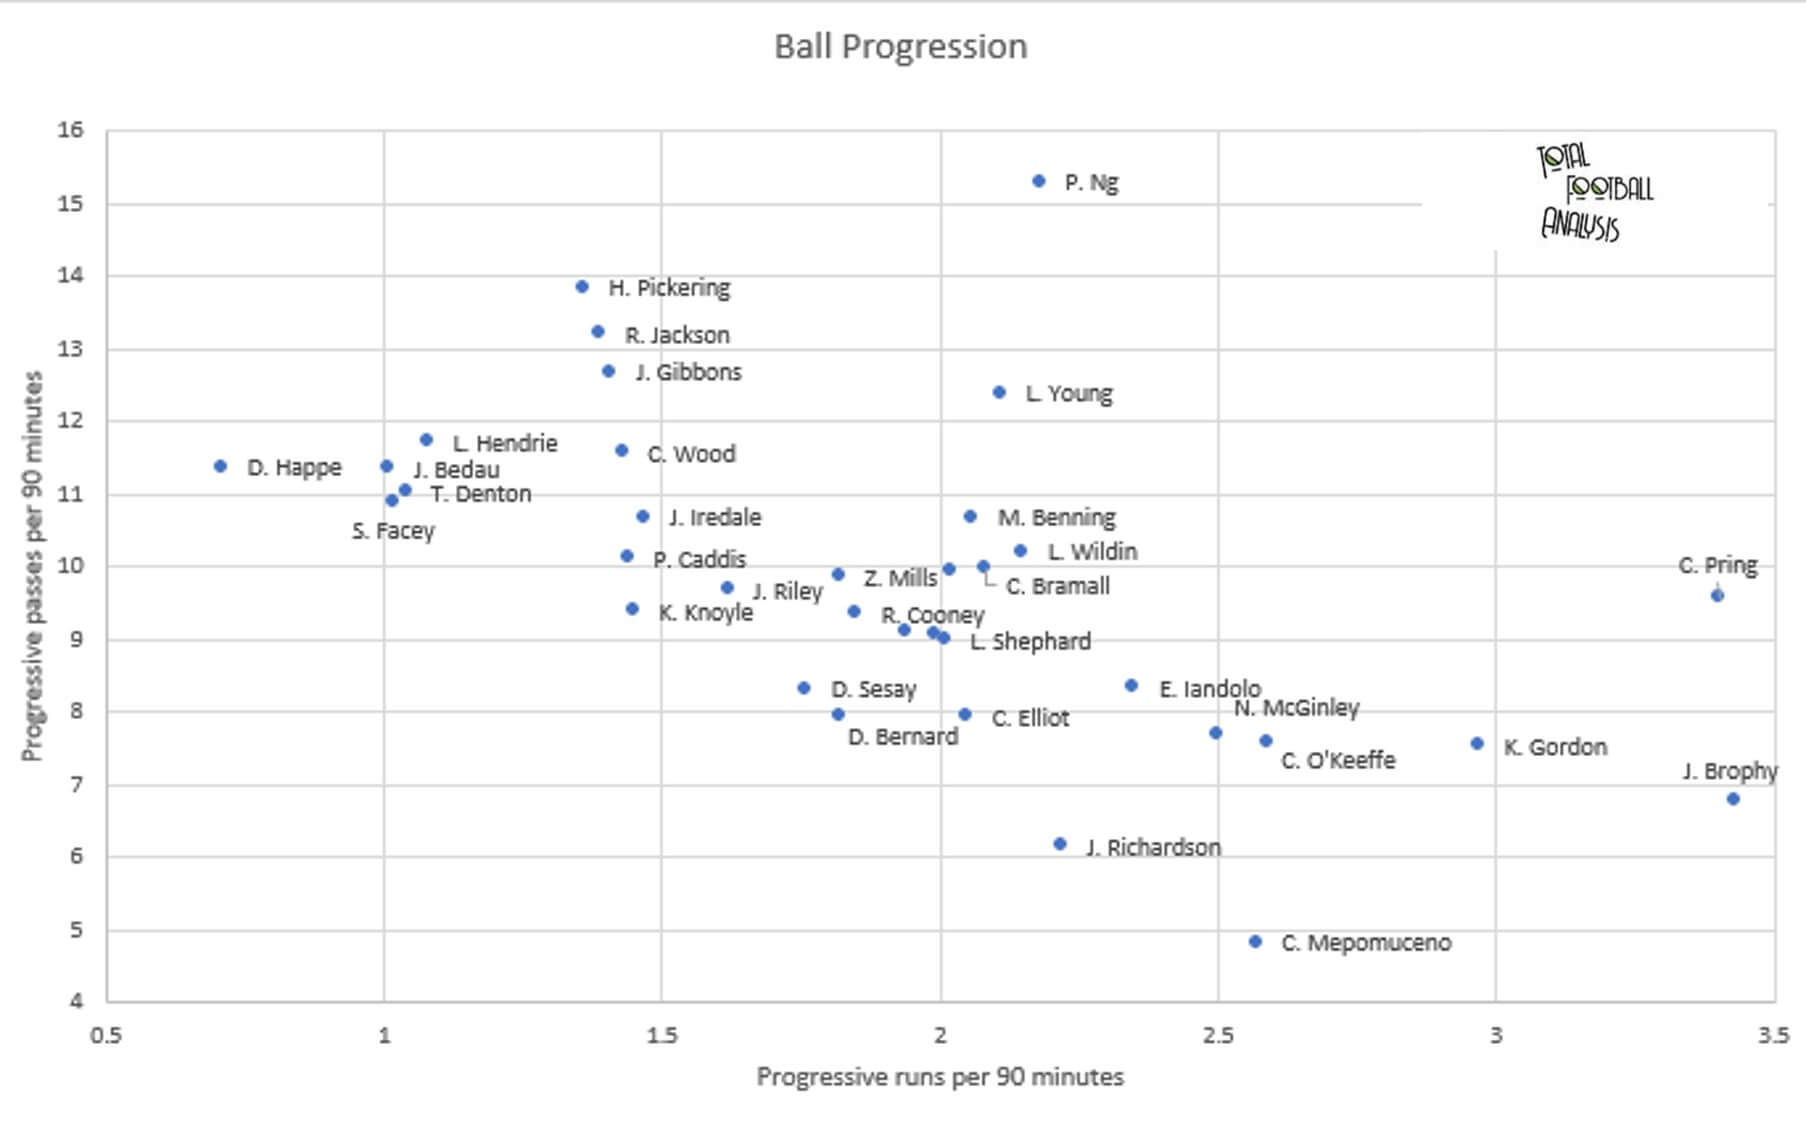 Finding the best full-backs in League Two - data analysis statistics